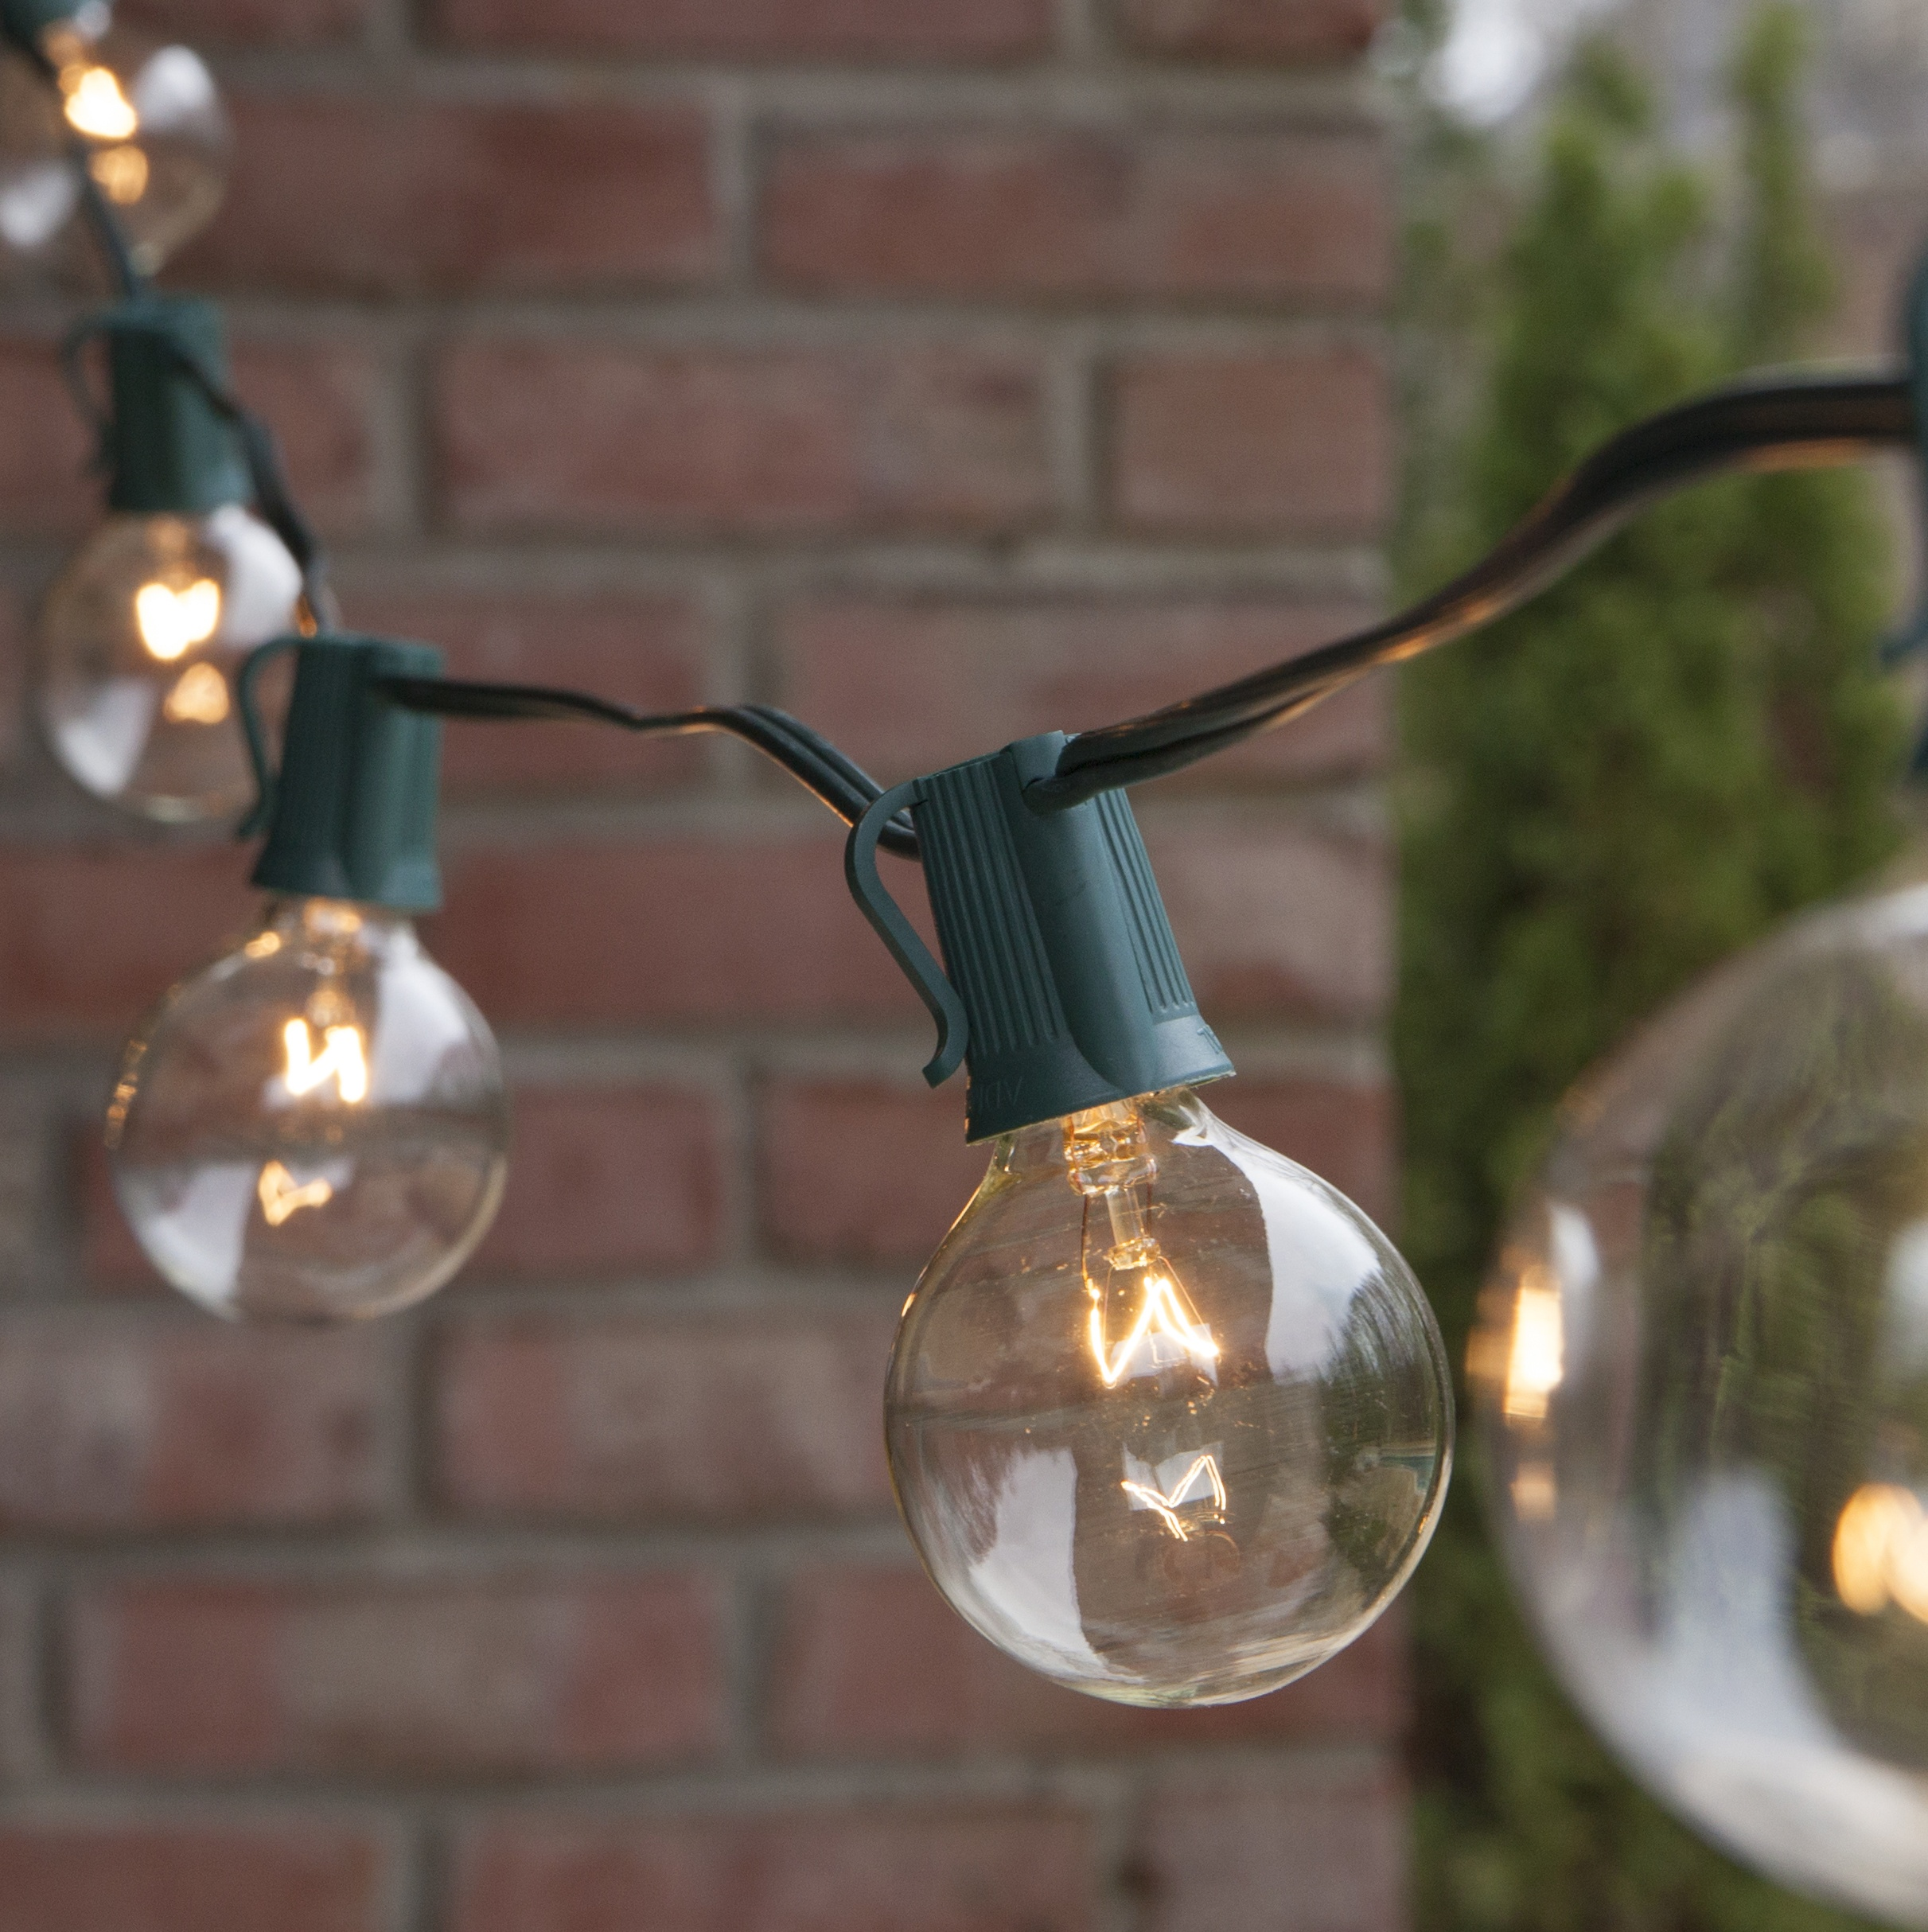 Outdoor String Lights Large Bulbs : Patio Lights - Commercial Clear Globe String Lights, 25 G50 E17 Bulbs Green Wire